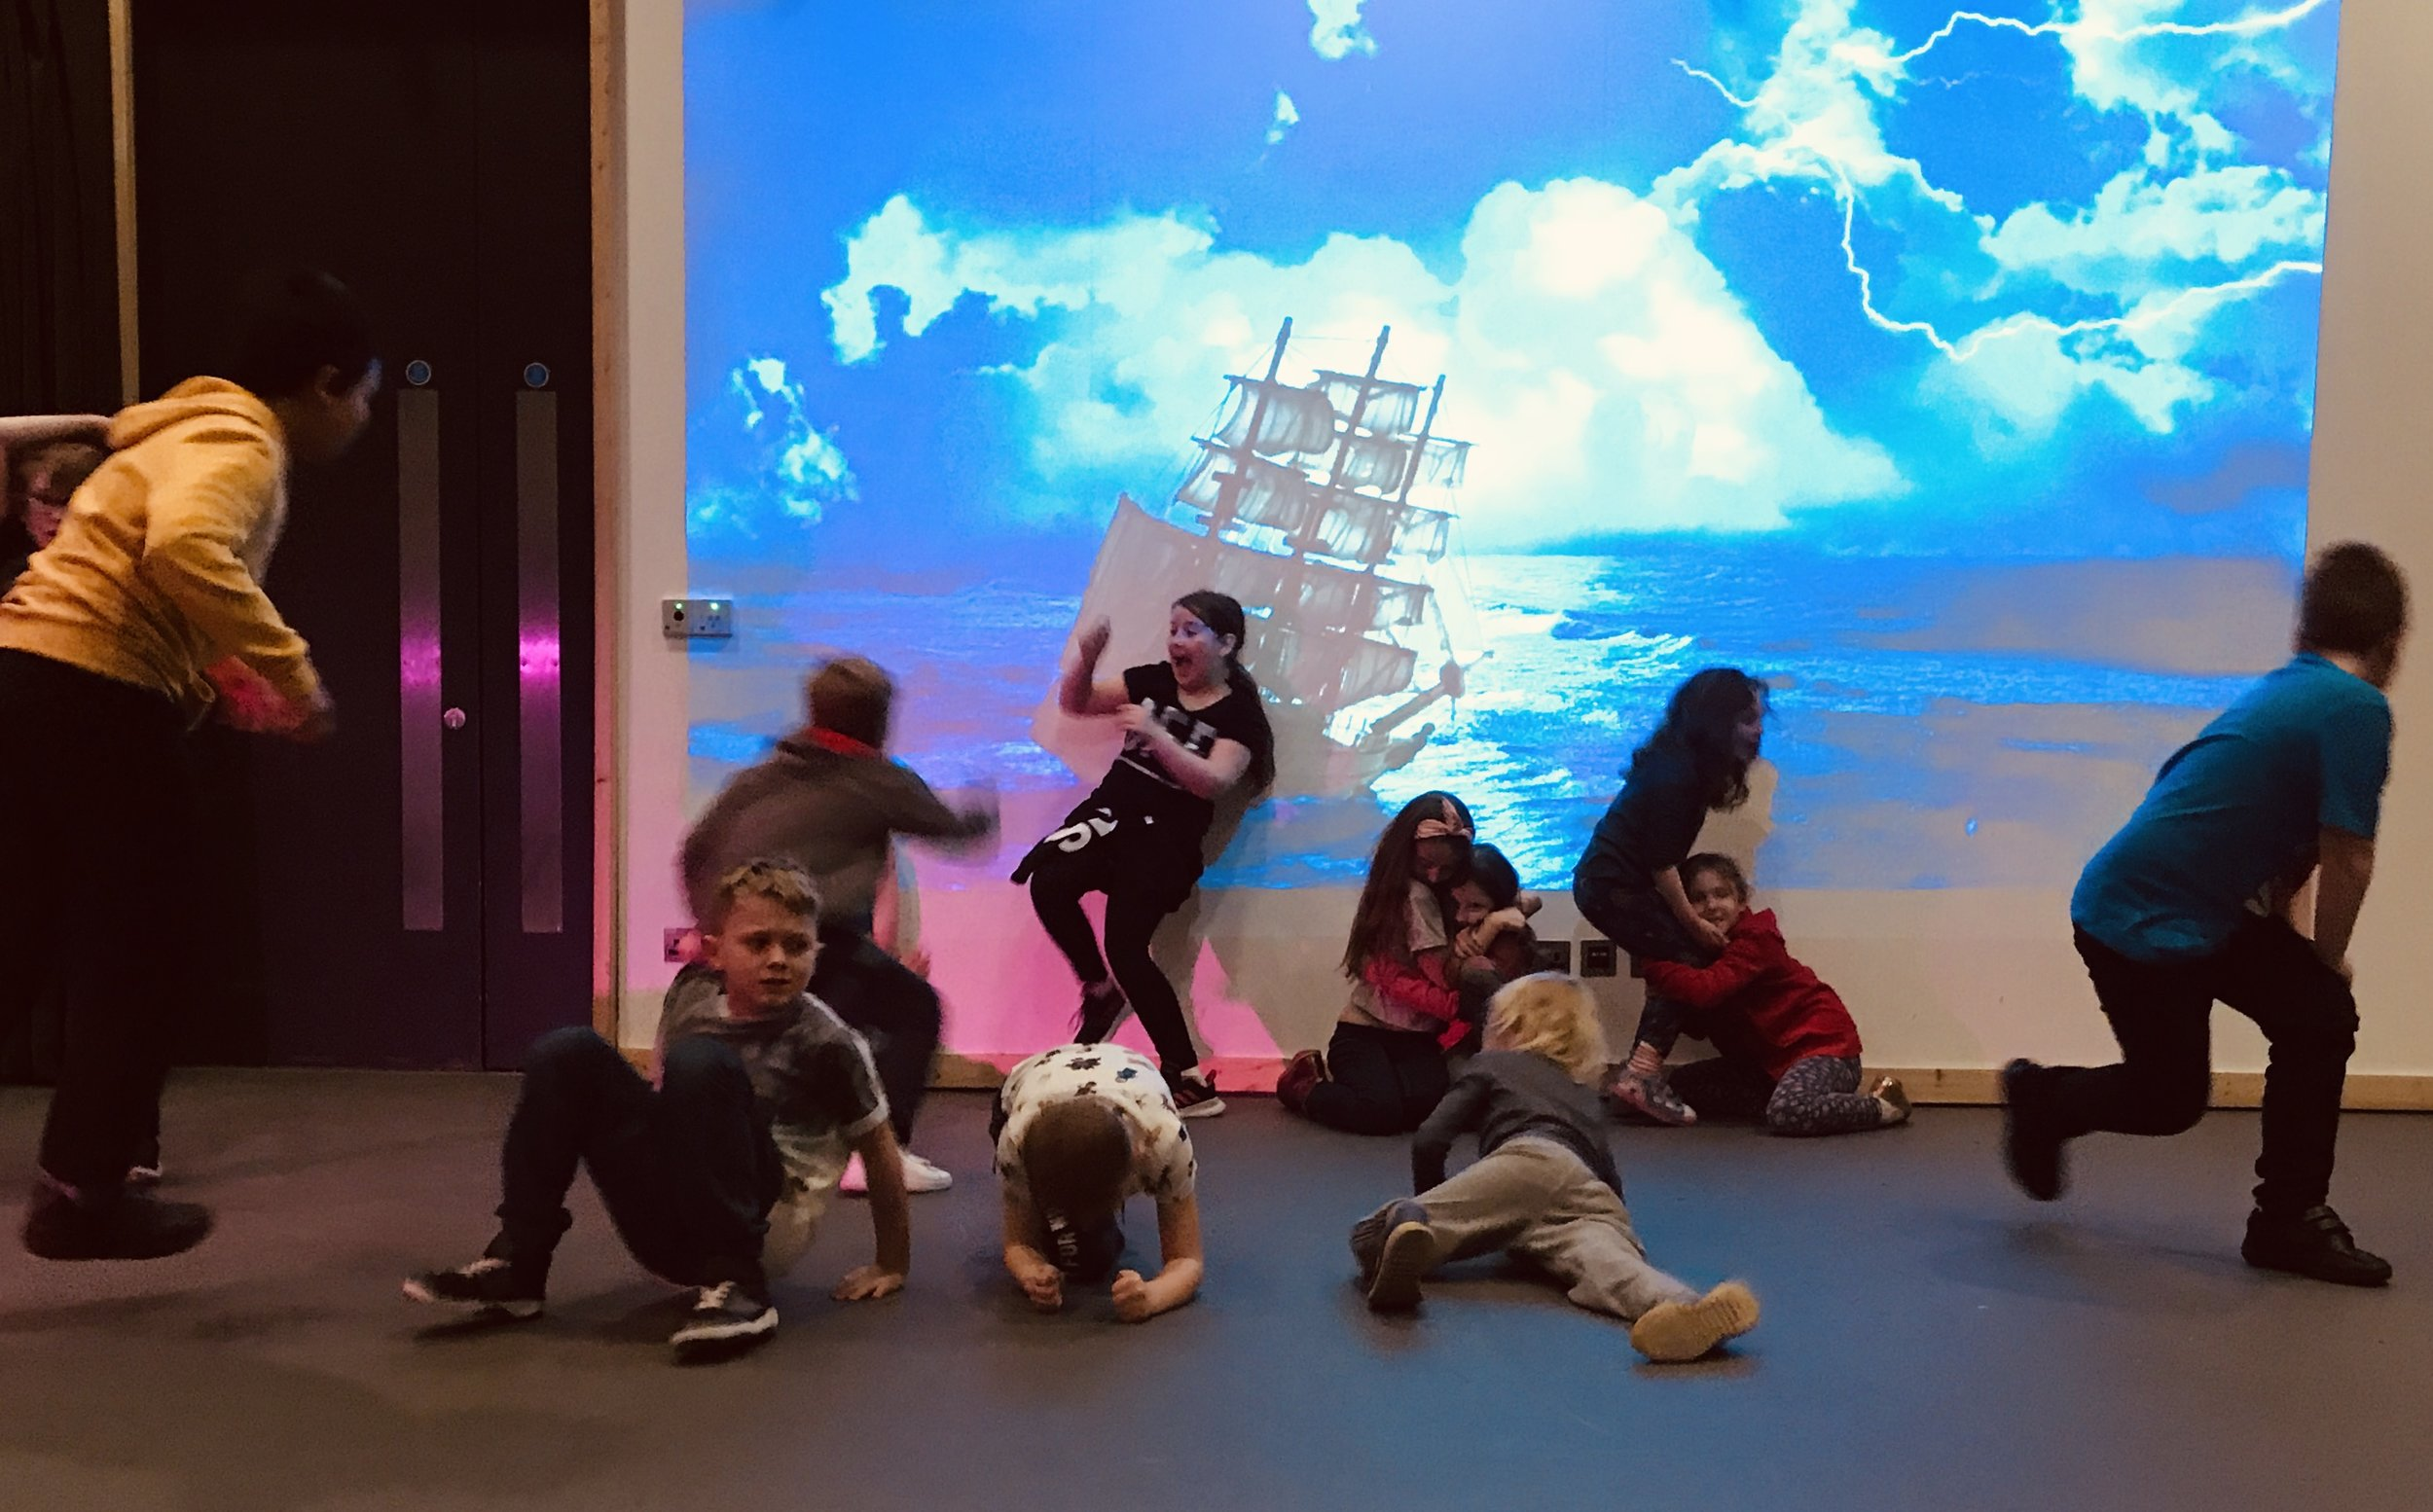 Shipwrecked - A project built around ways of creating action and adventure on stage.